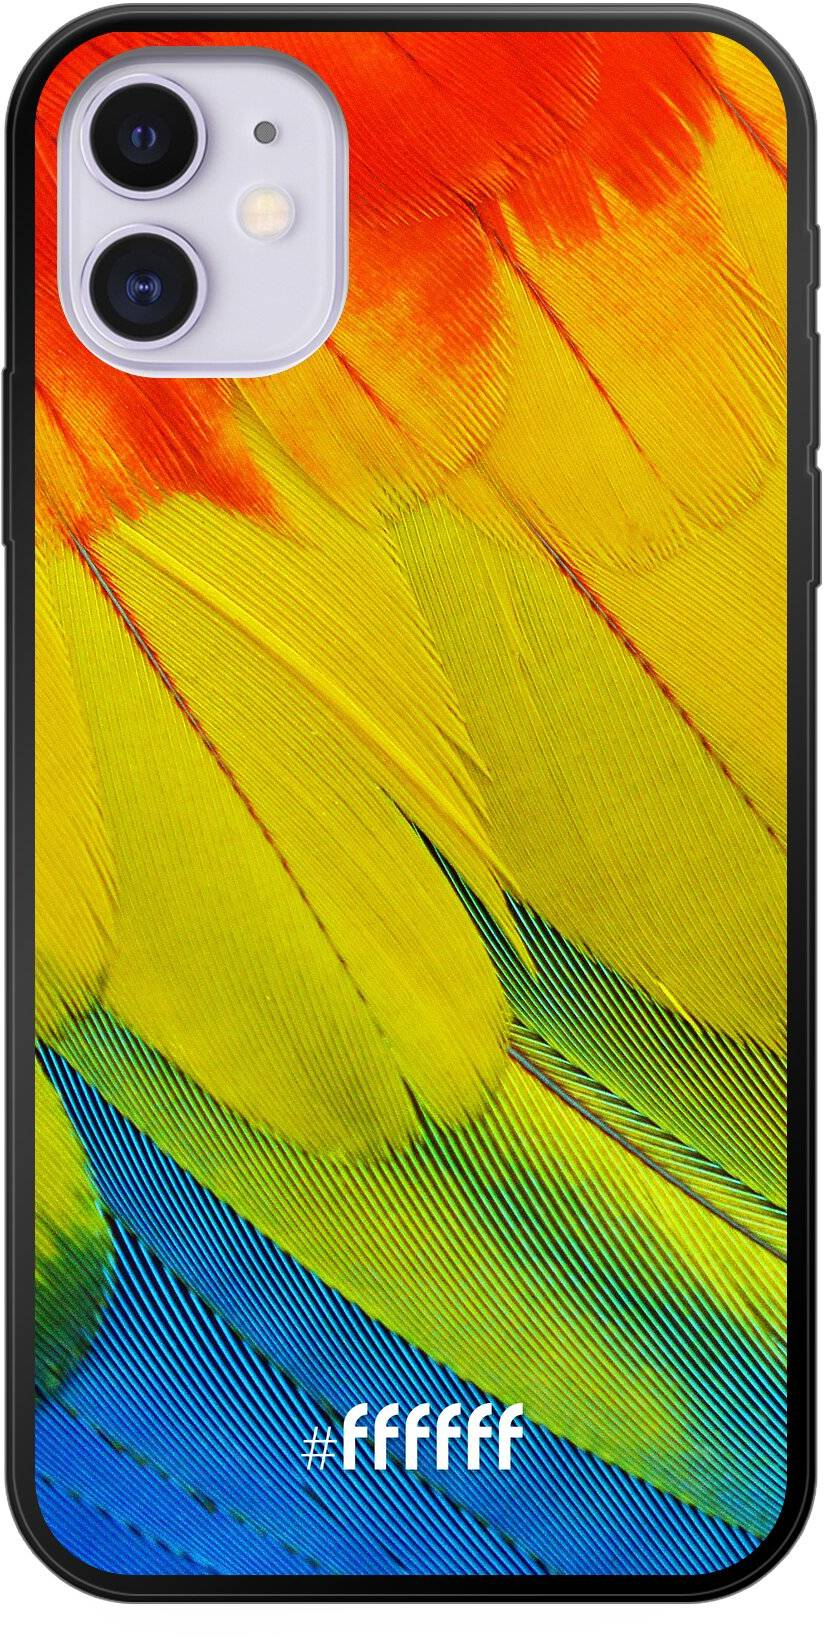 Macaw Hues iPhone 11